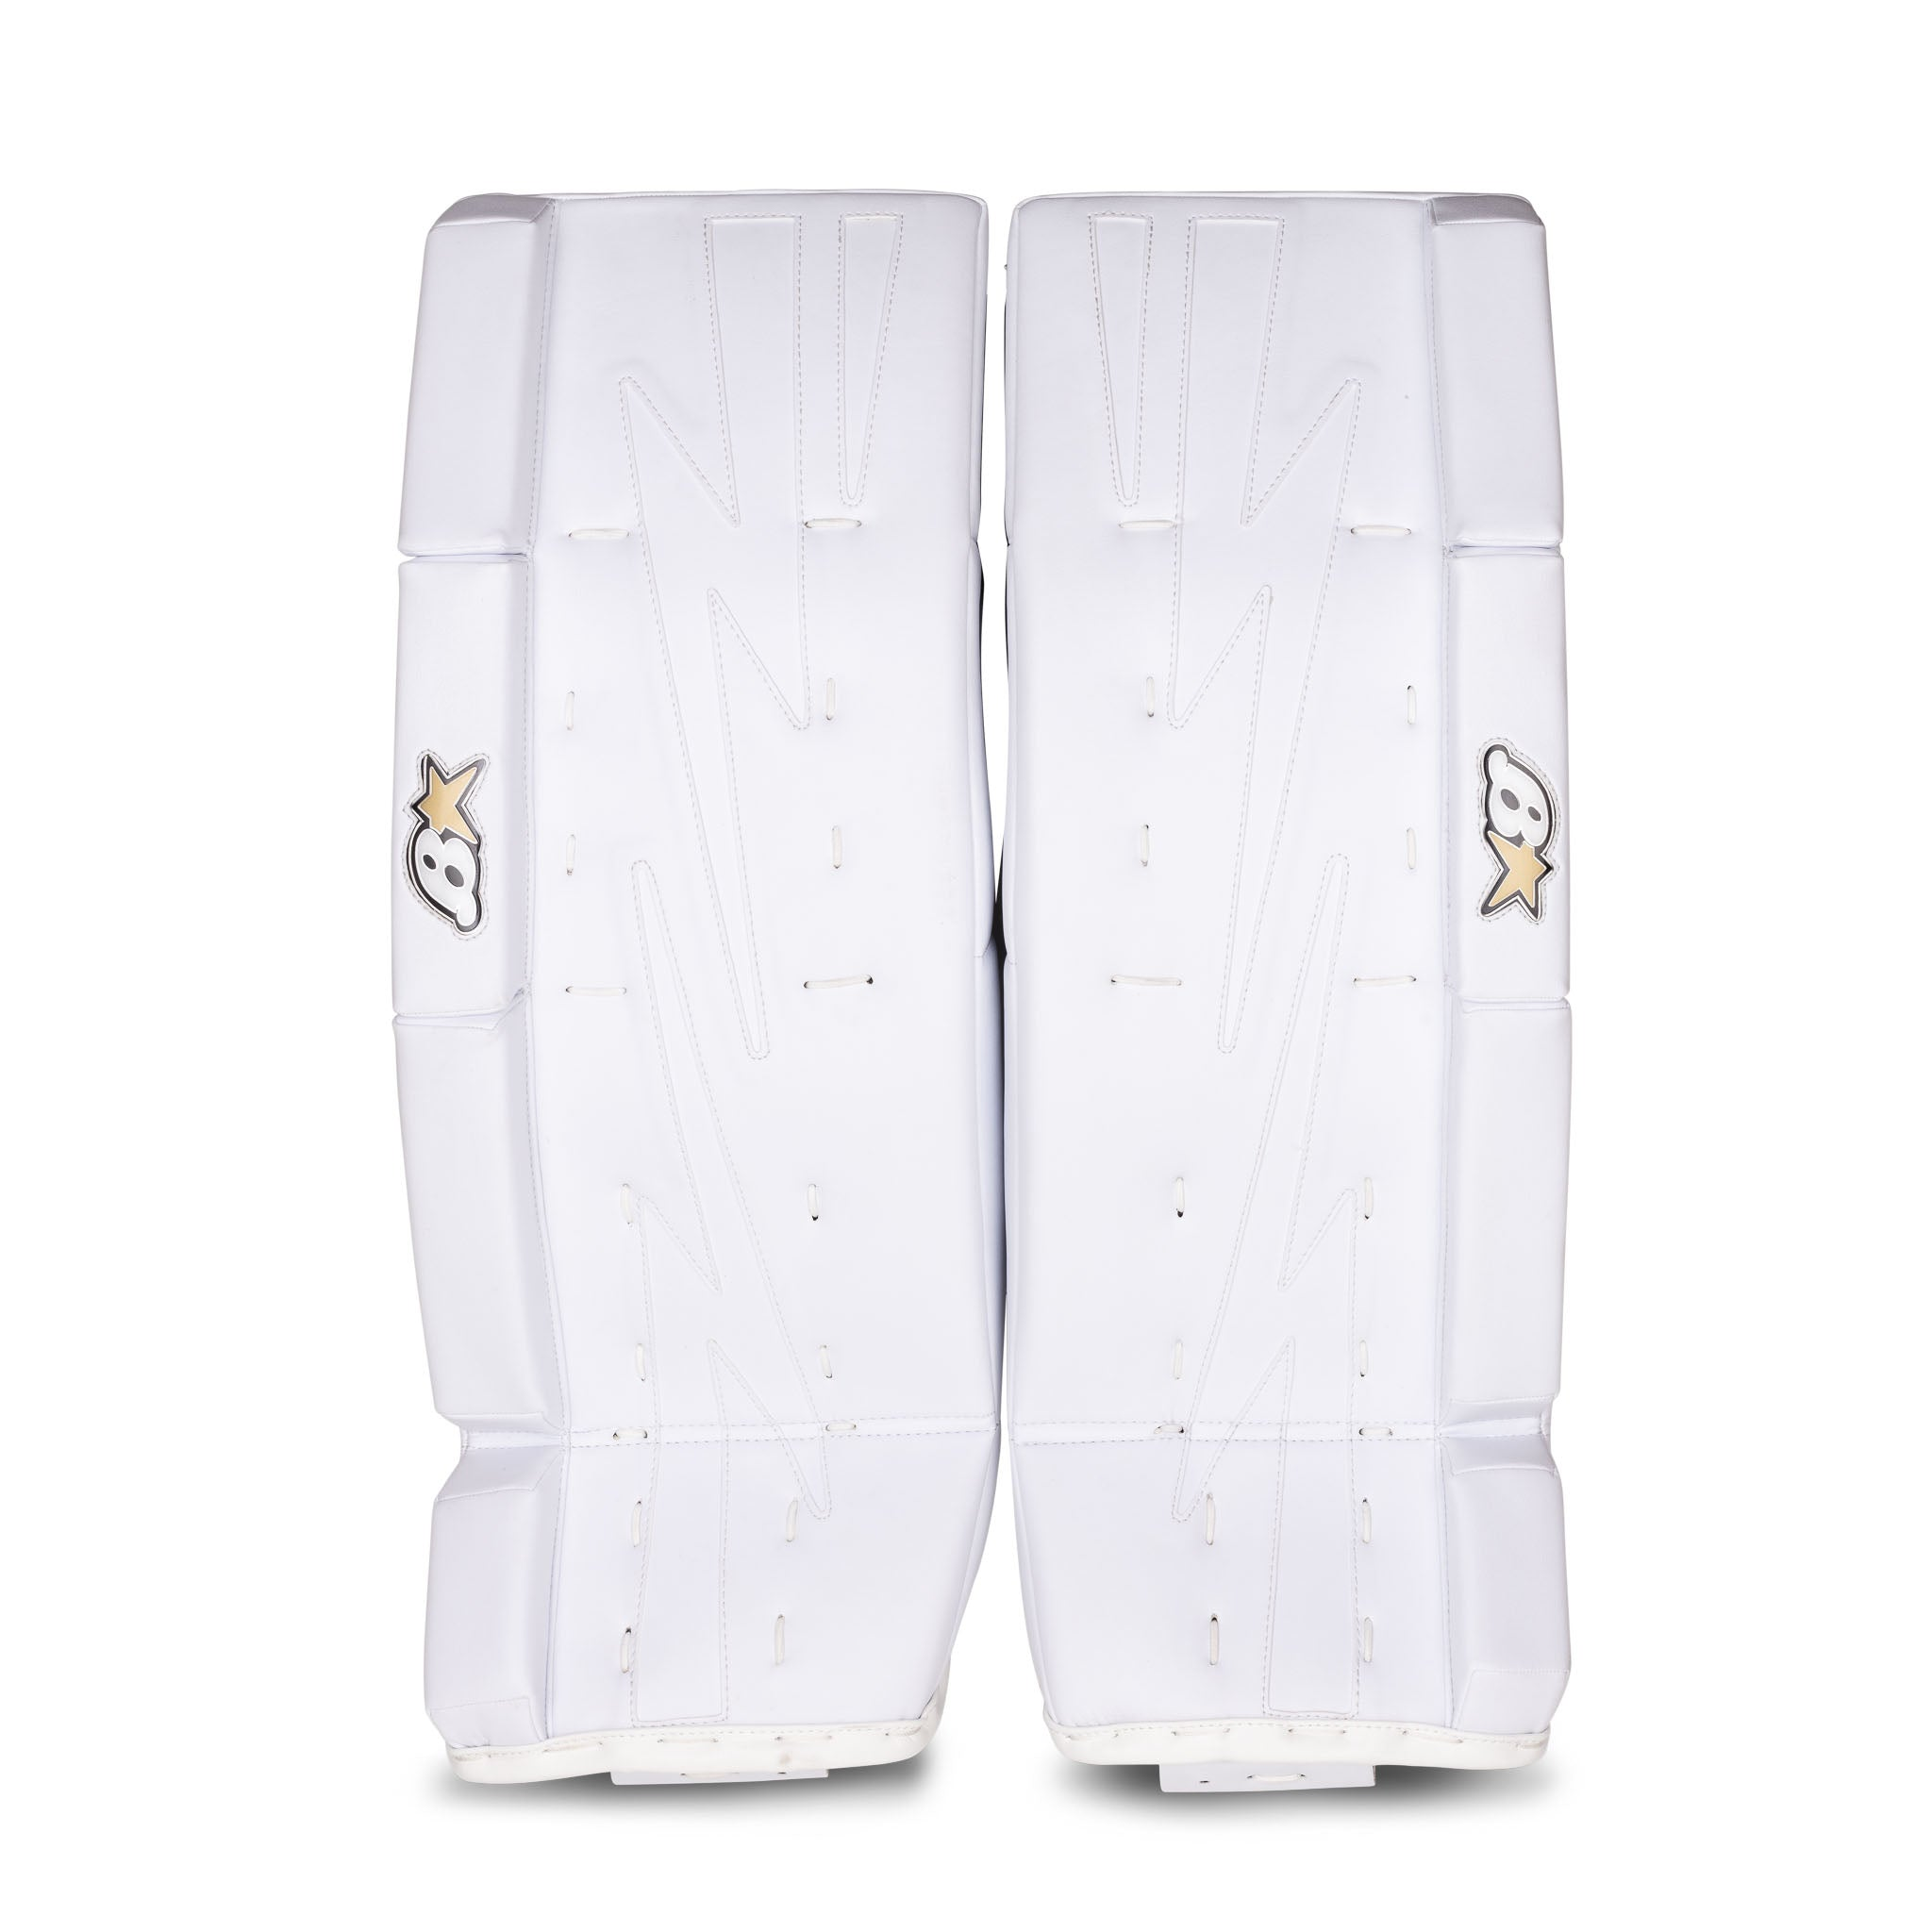 Brian's NetZero 2 Junior Goalie Leg Pads